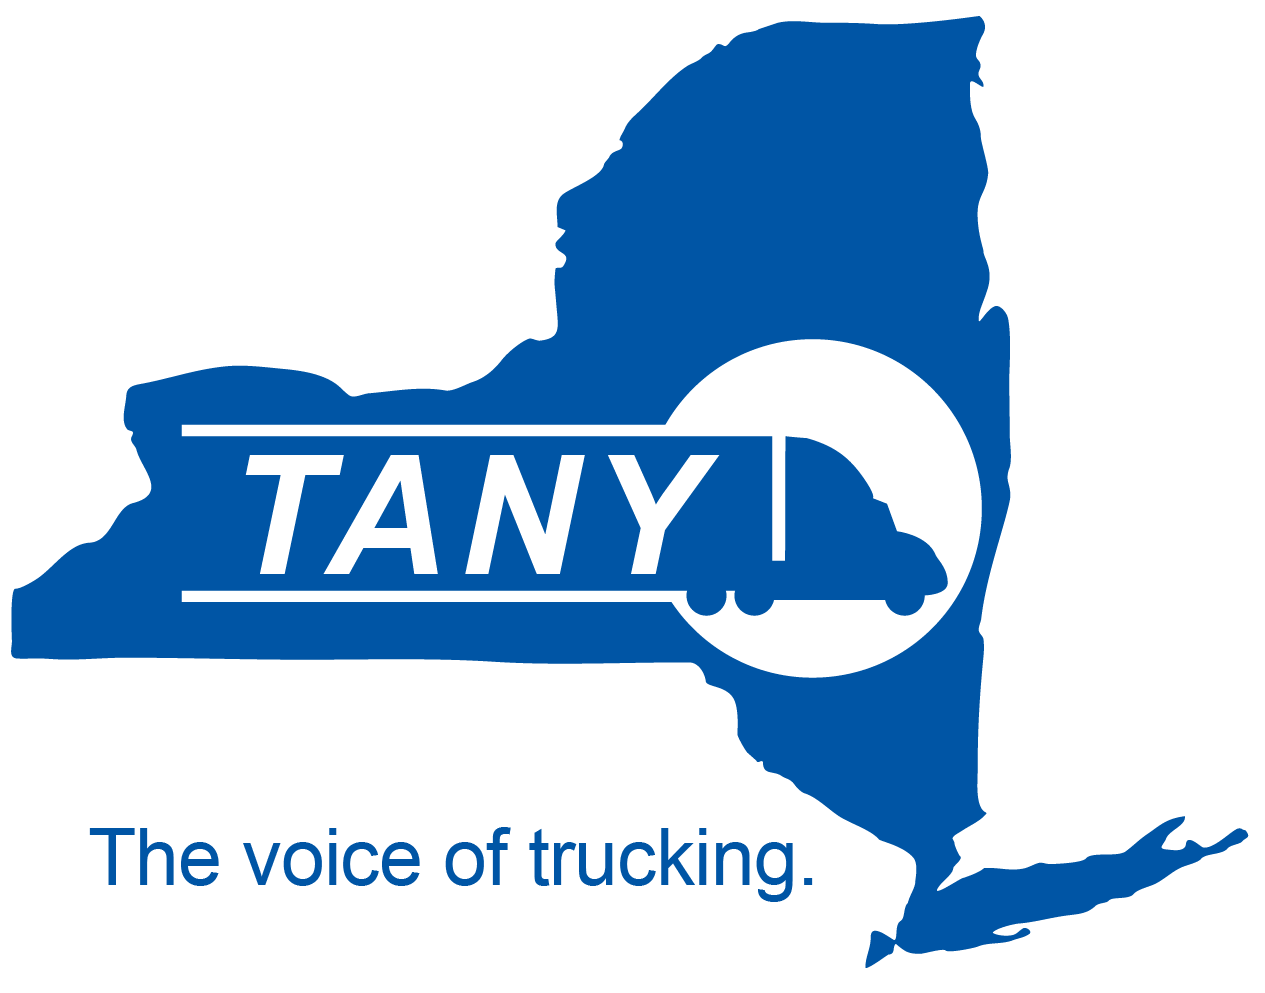 Trucking Association of New York